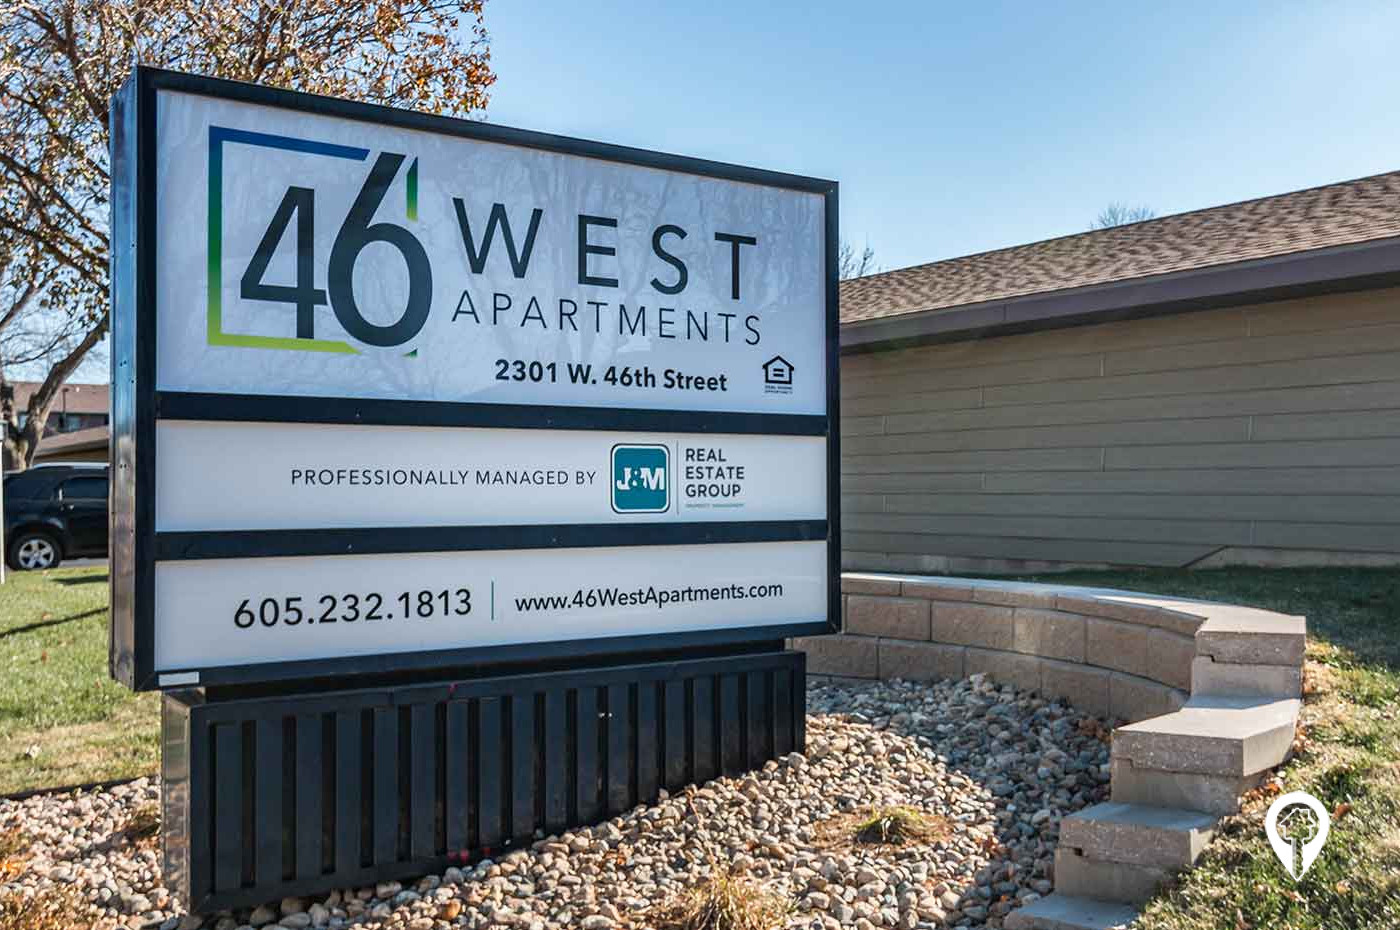 46West Apartments